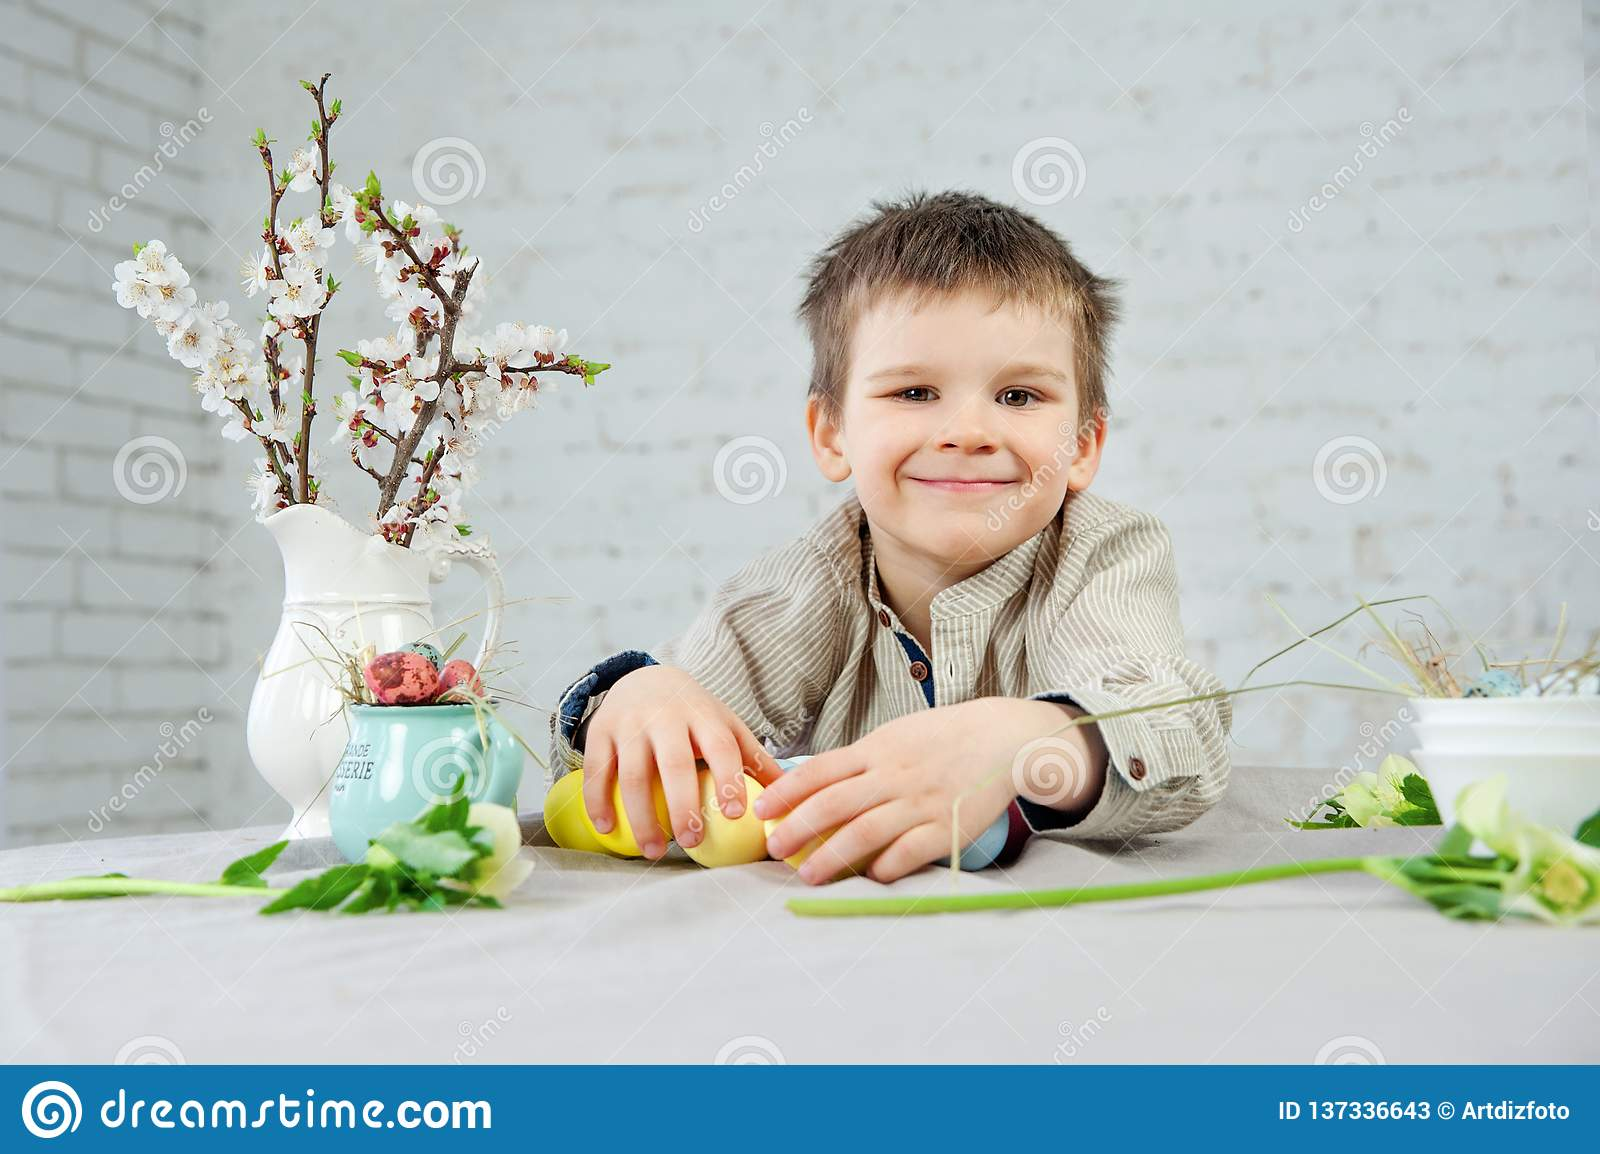 Cute smiling little boy painting Easter eggs on white background